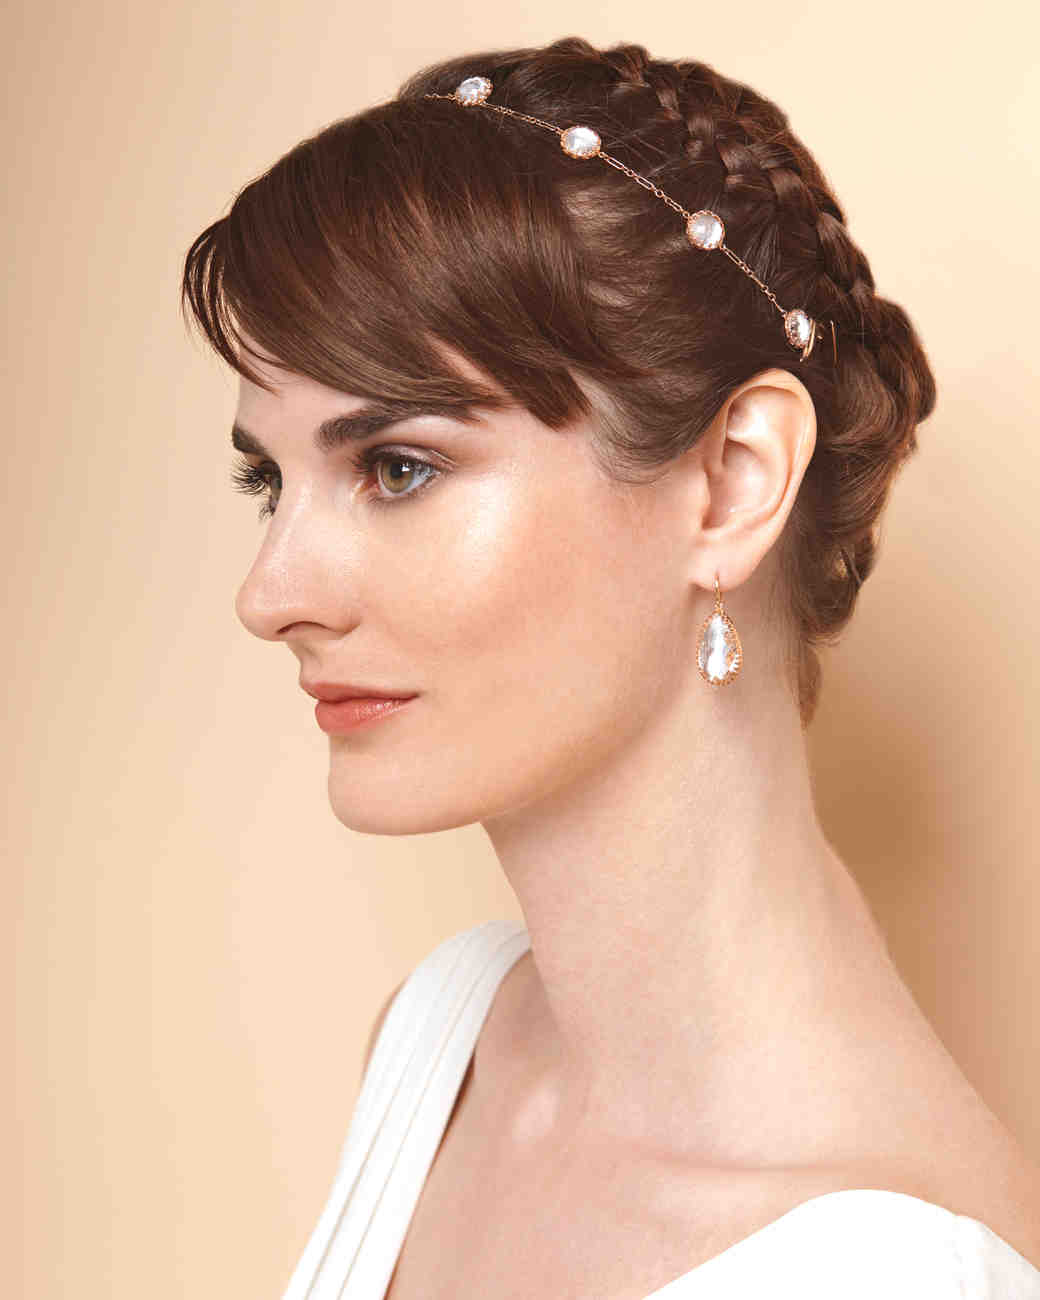 33 ways to wear your hair down for your wedding | martha stewart